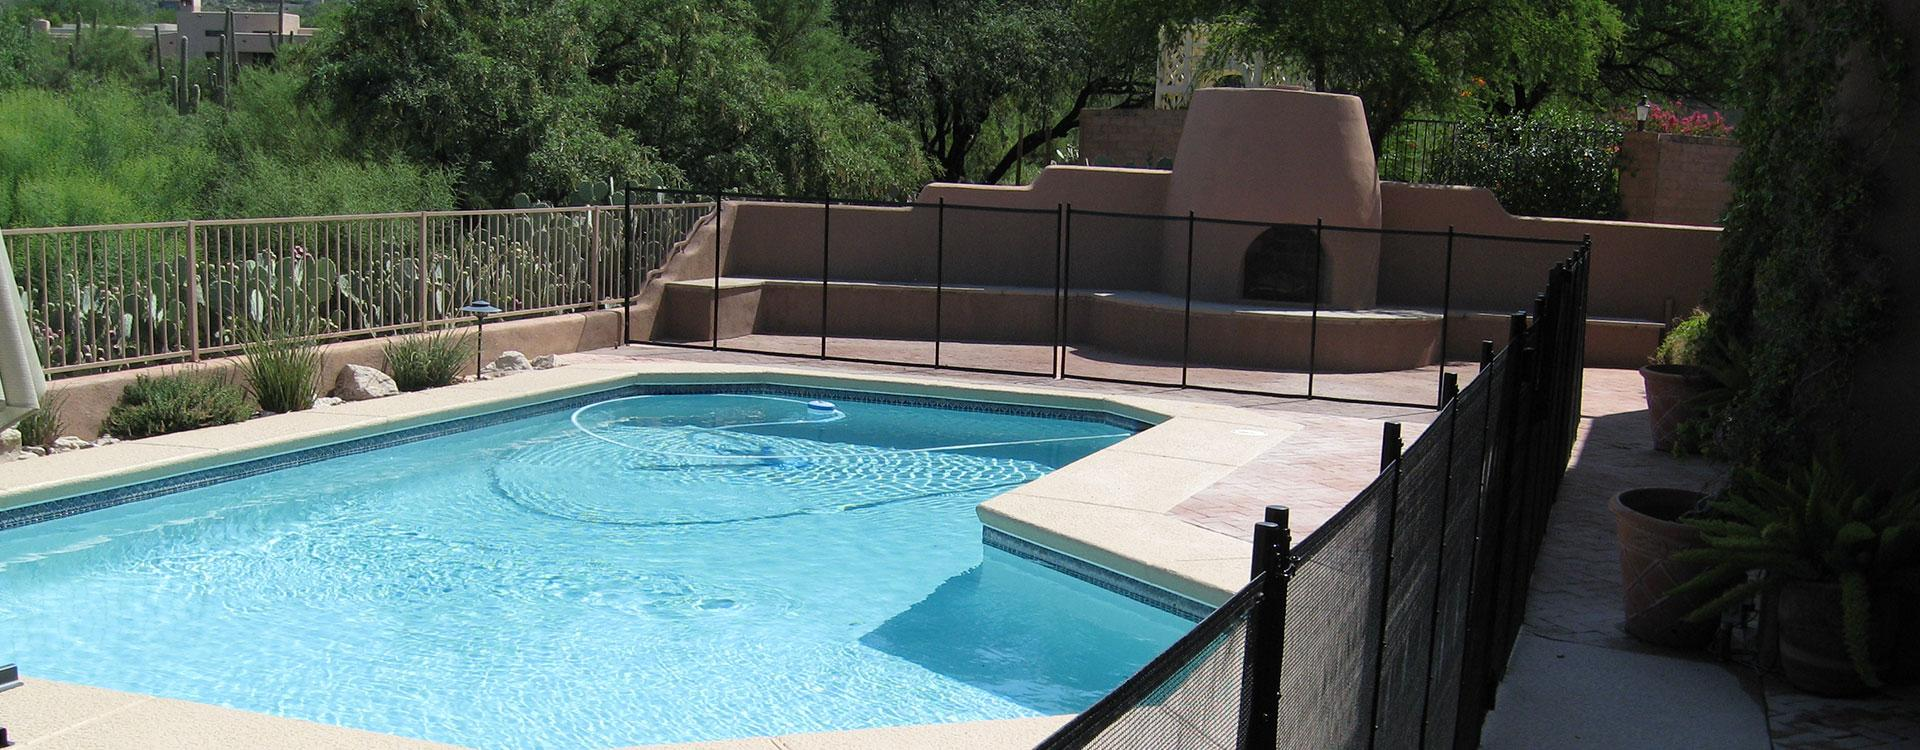 Removable Mesh Pool Fence - Partial Perimeter